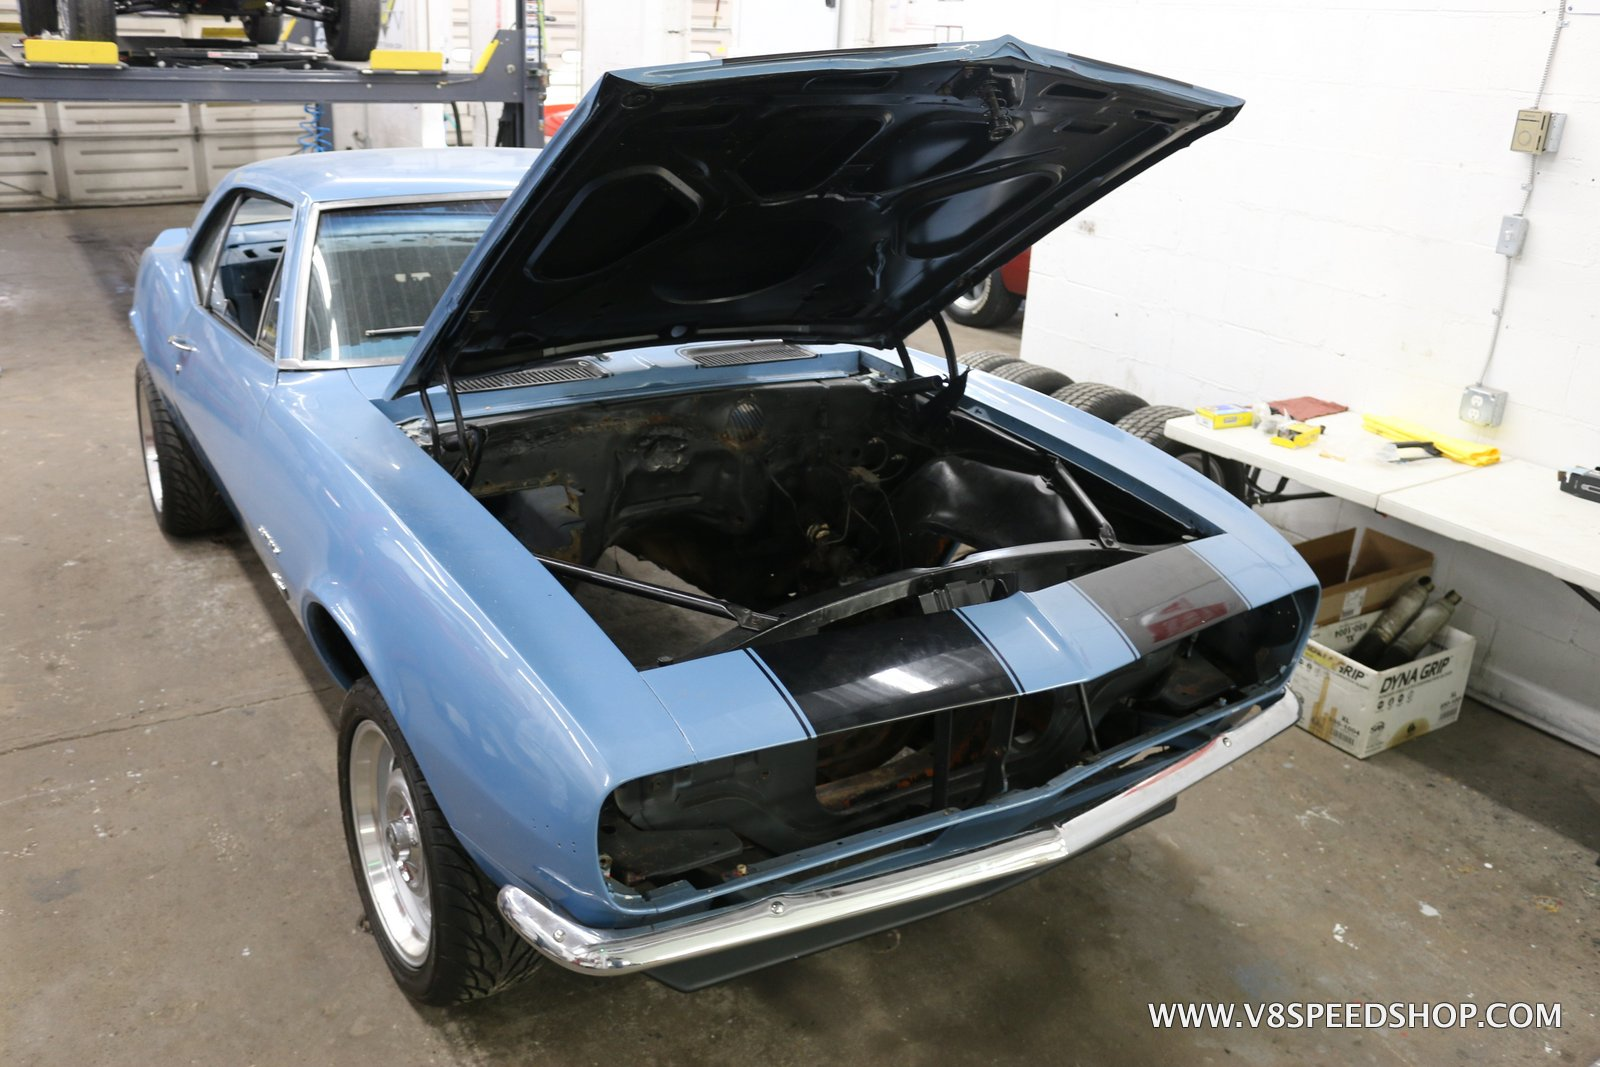 1967 Chevrolet Camaro Restoration and LSA Upgrades at the V8 Speed and Resto Shop